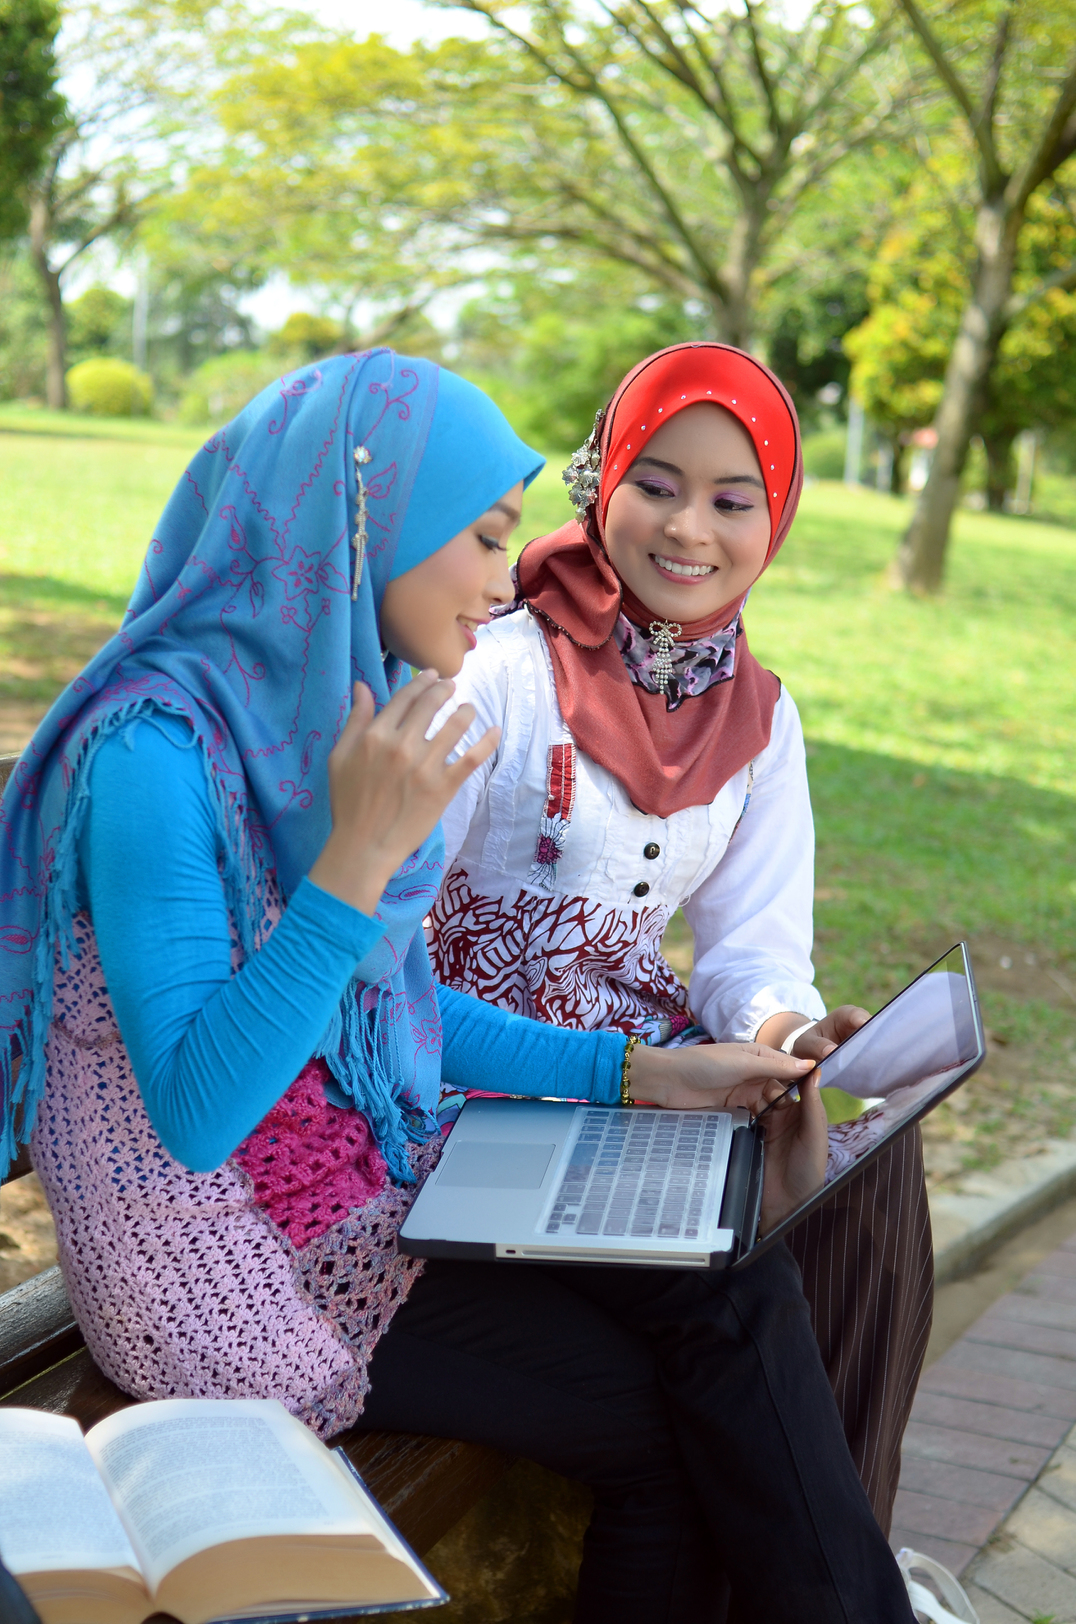 Two students studying outside with their laptops